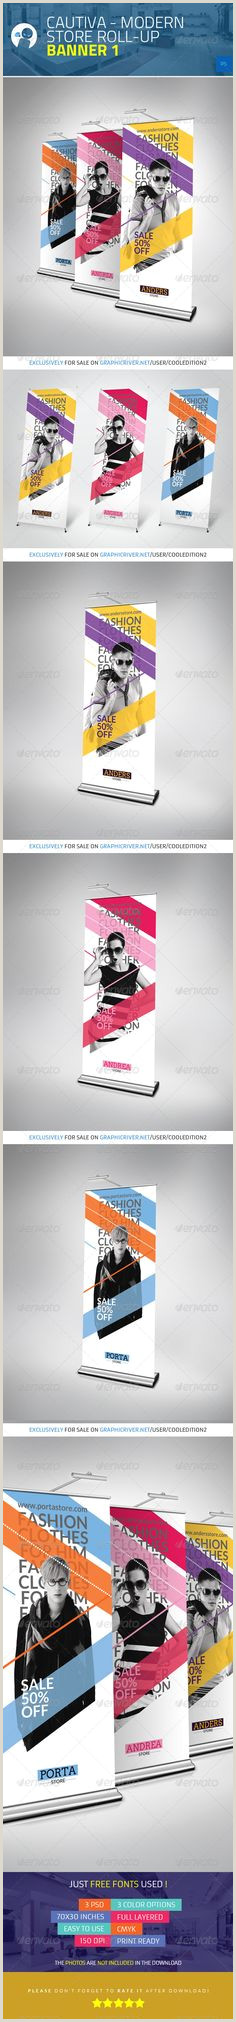 Pull Up Display Banner 40 Mejores Imágenes De Roll Up Banner